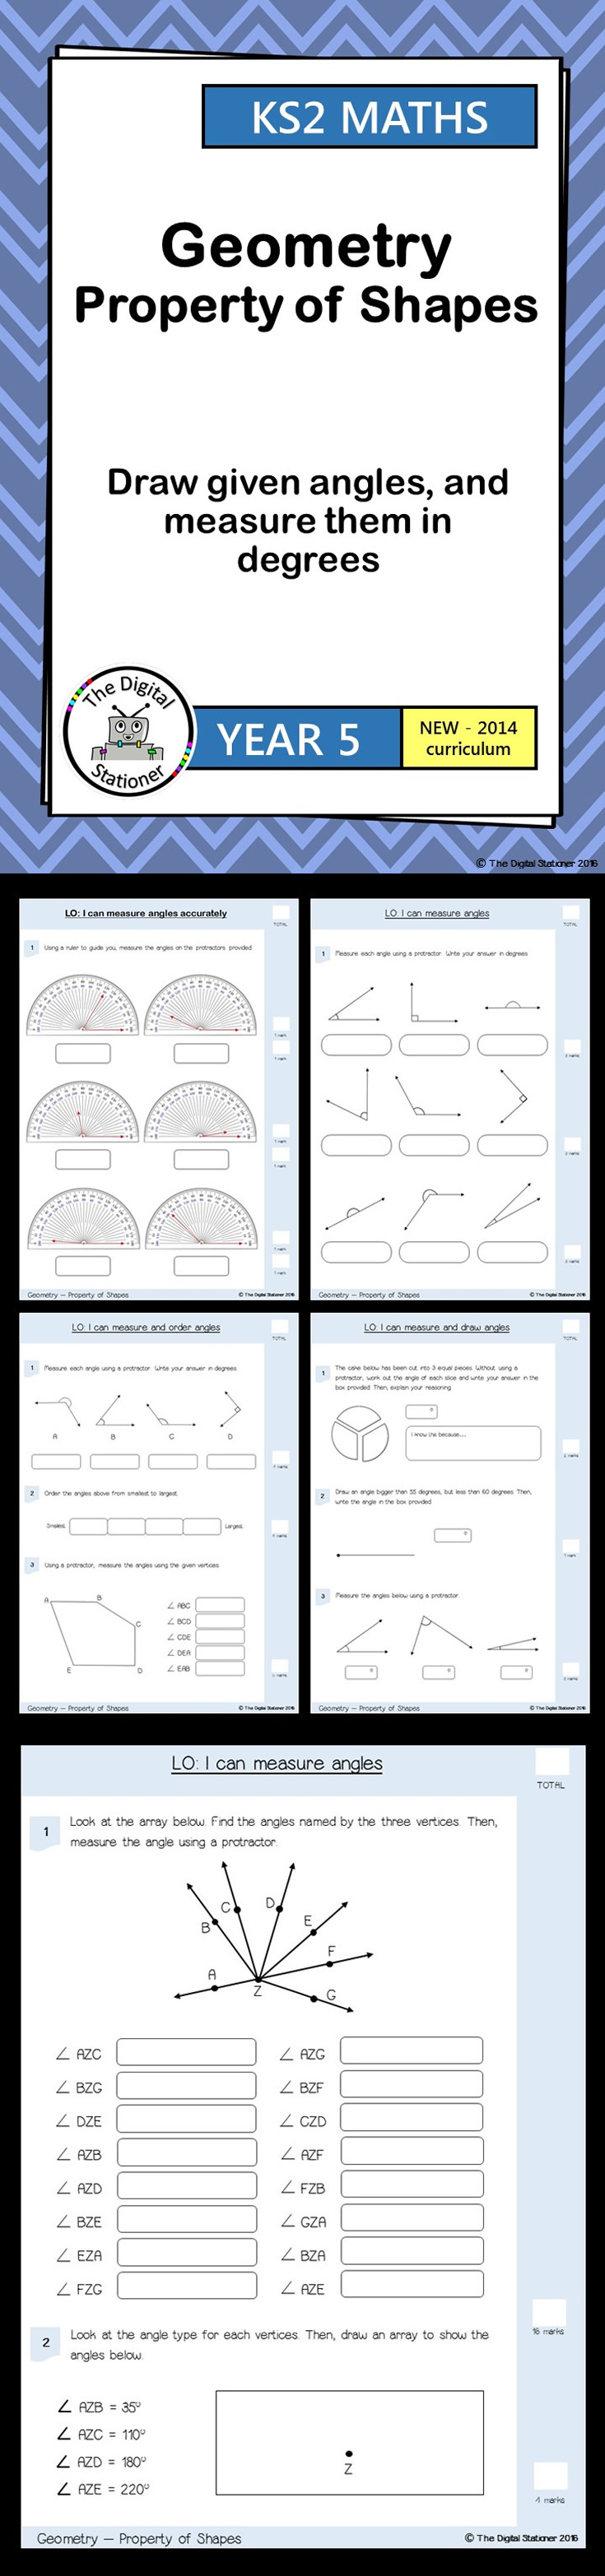 Year 5 Draw and measure angles Geometry Property of